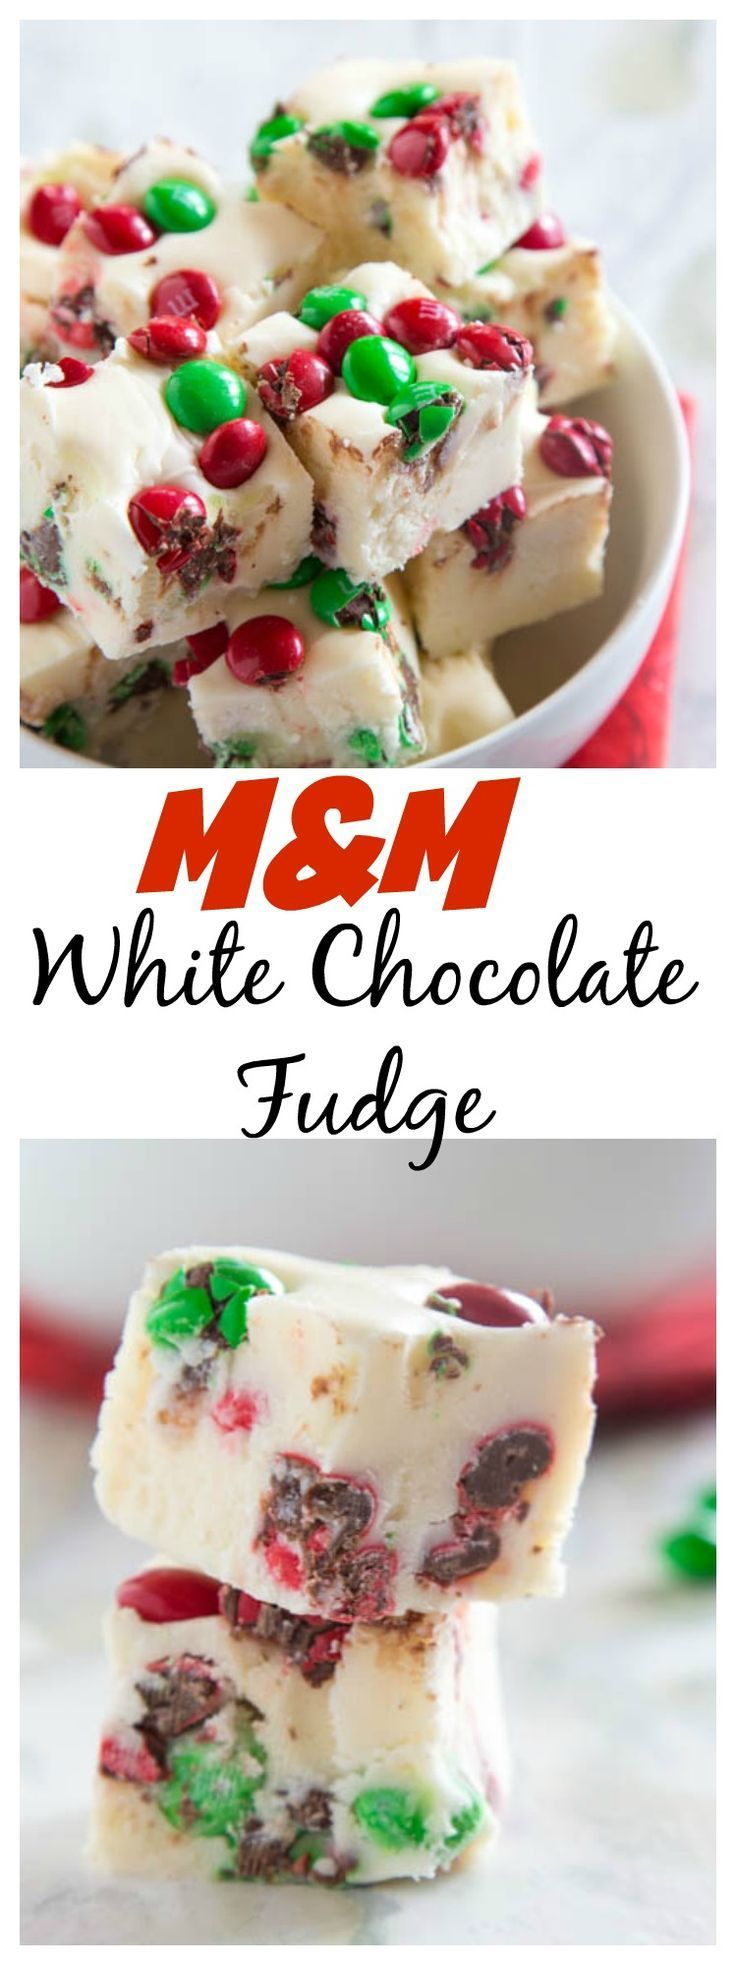 M&M White Chocolate Fudge – Easy sweet white chocolate fudge with lots of festive M&M's #bakeitforward